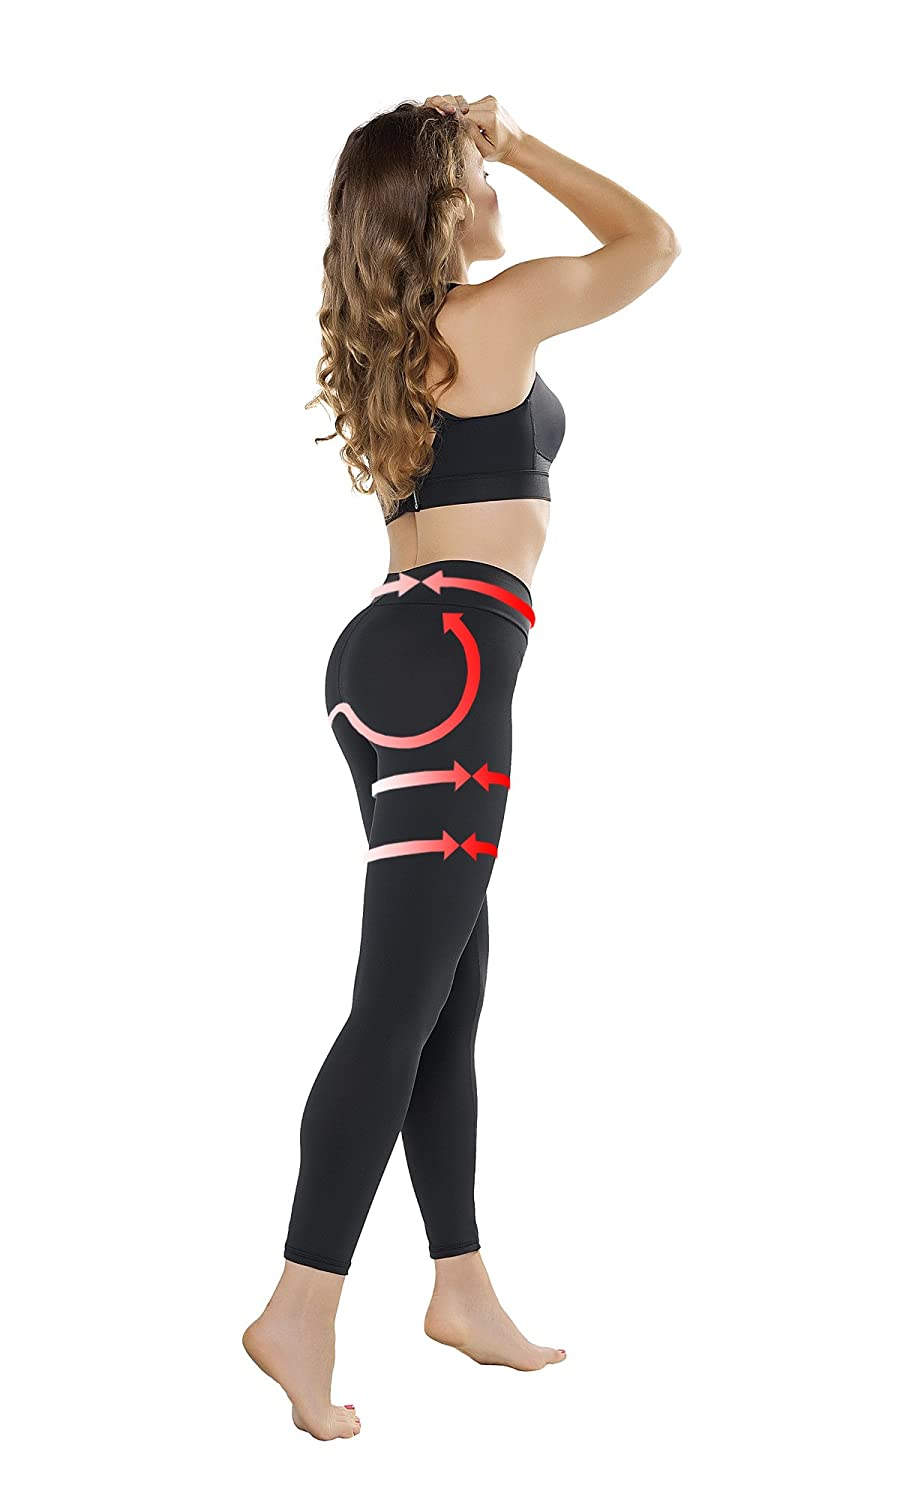 Pantaloni Sportivi per Fitness Palestra Push Up Anti Cellulite da Donna